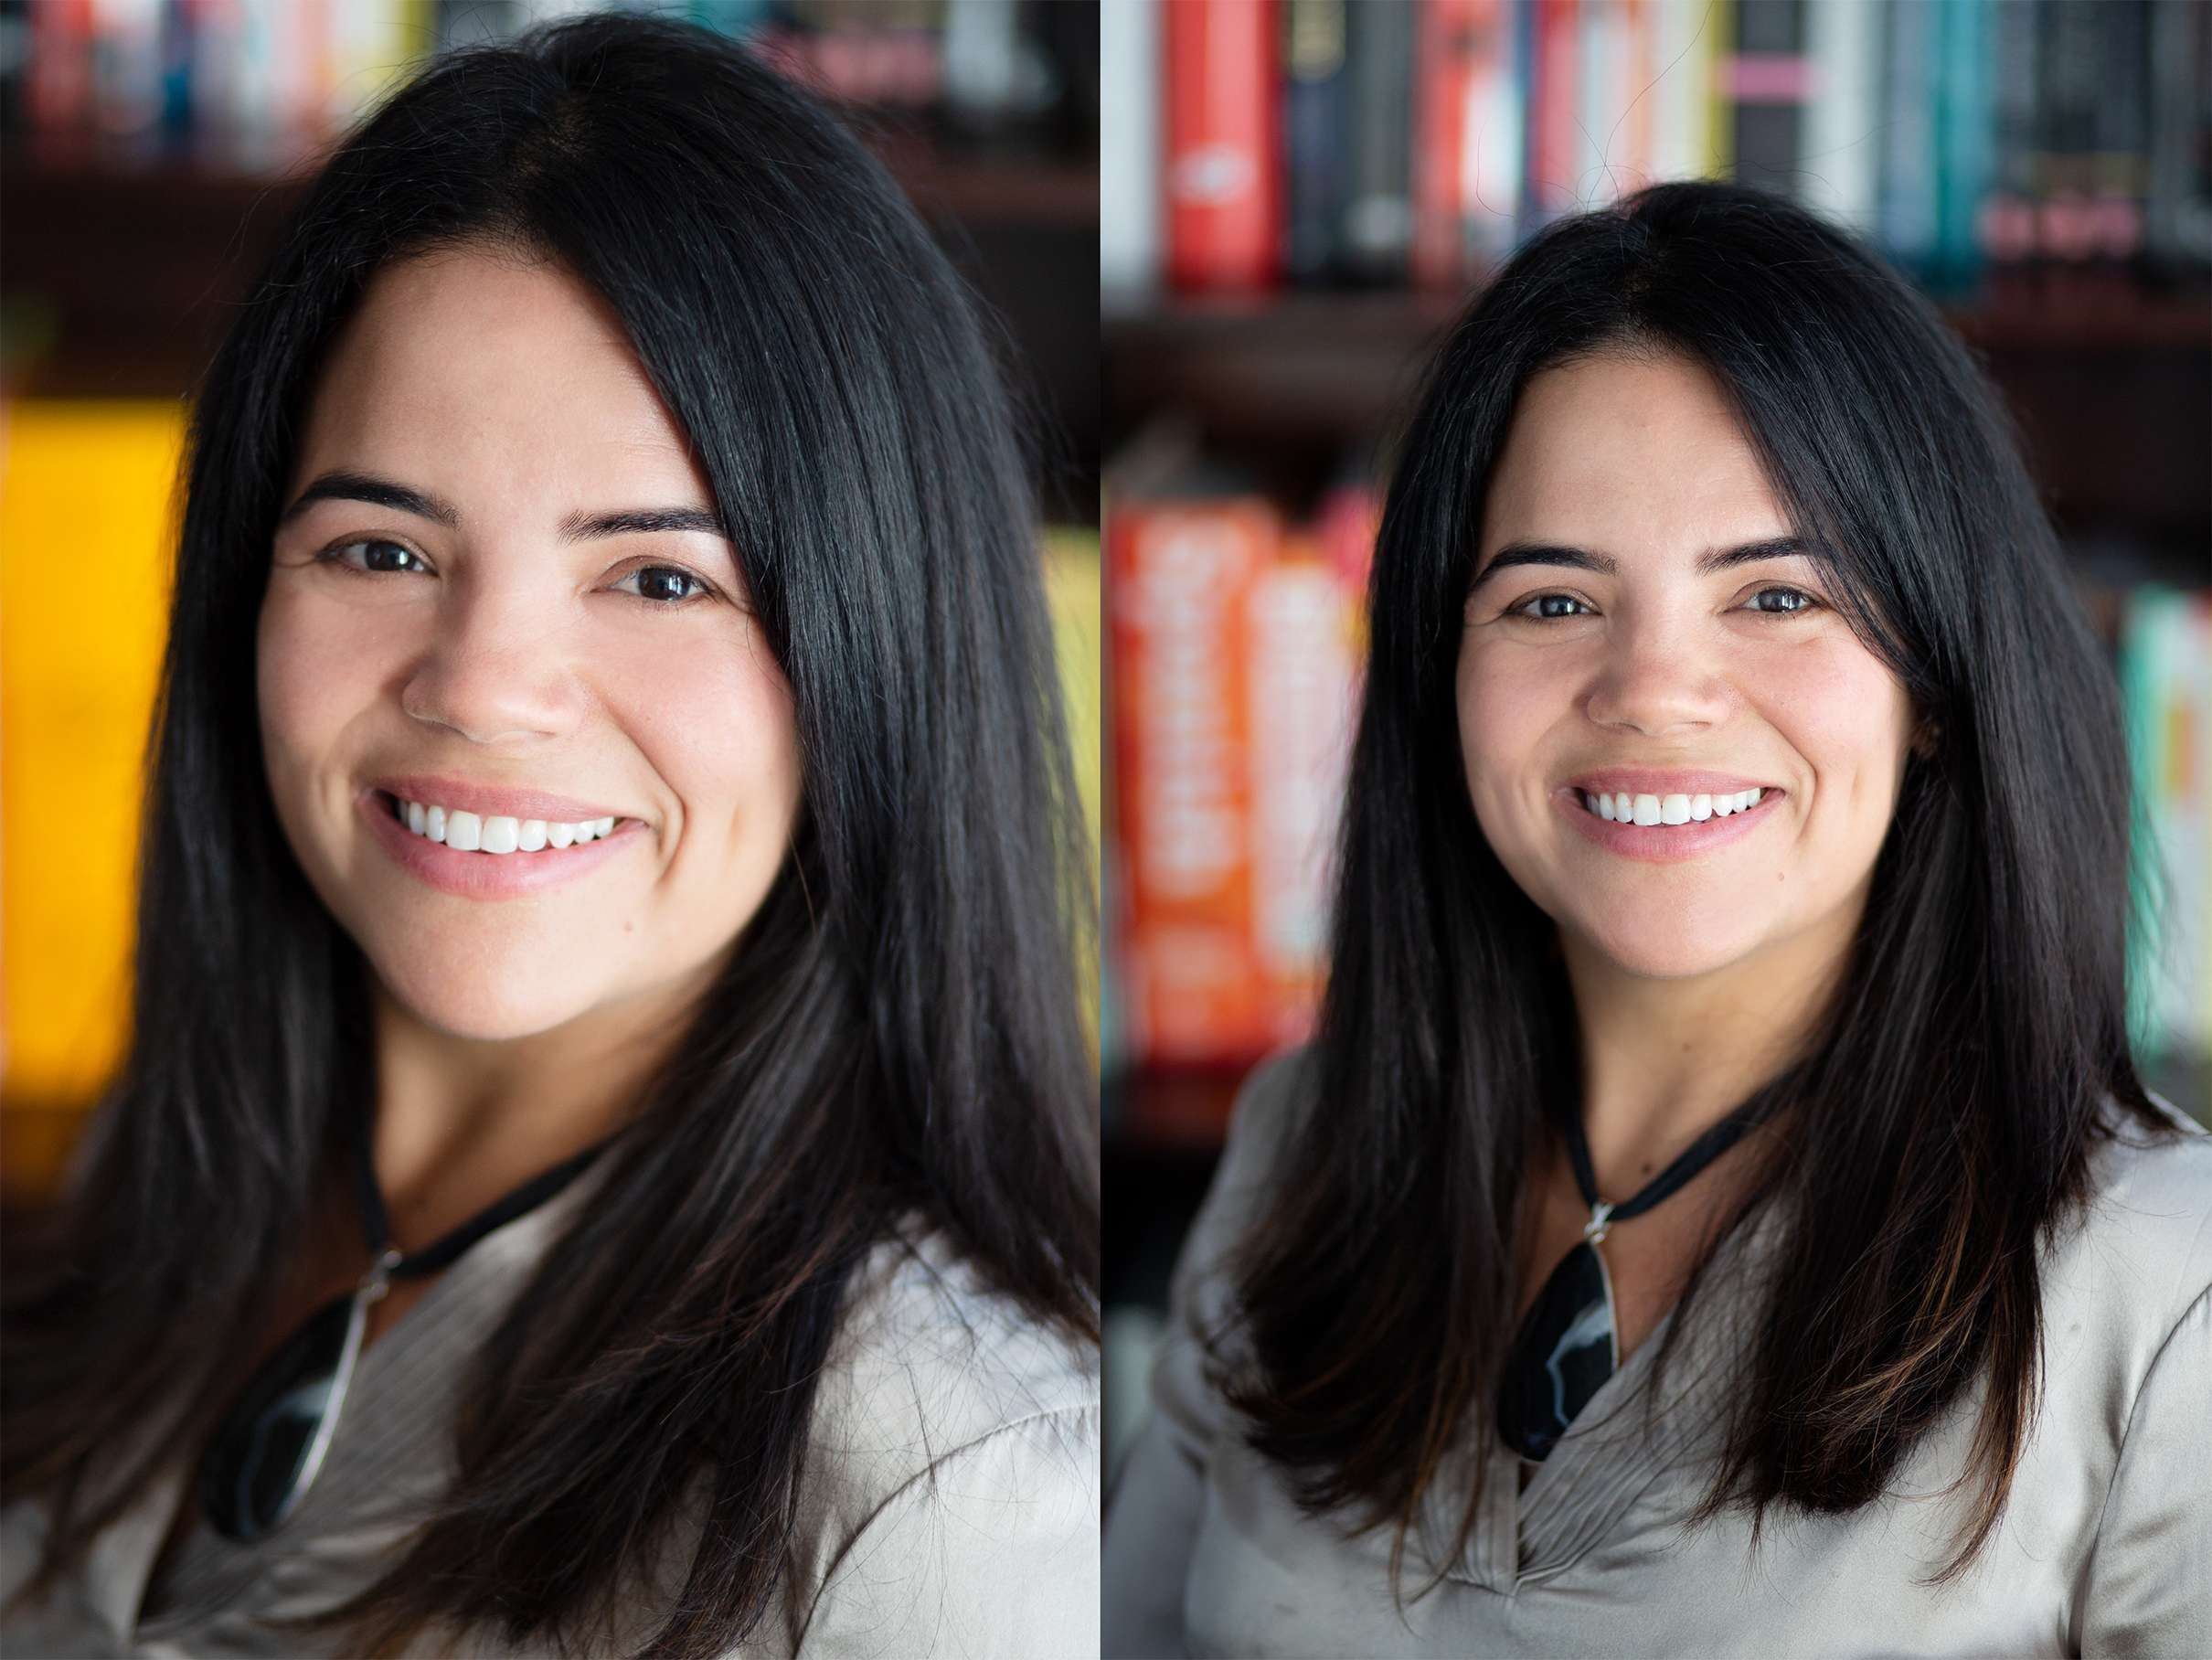 Two headshot portrait photos of a woman standing in front of a colourful bookcase, taken in Chichester, West Sussex